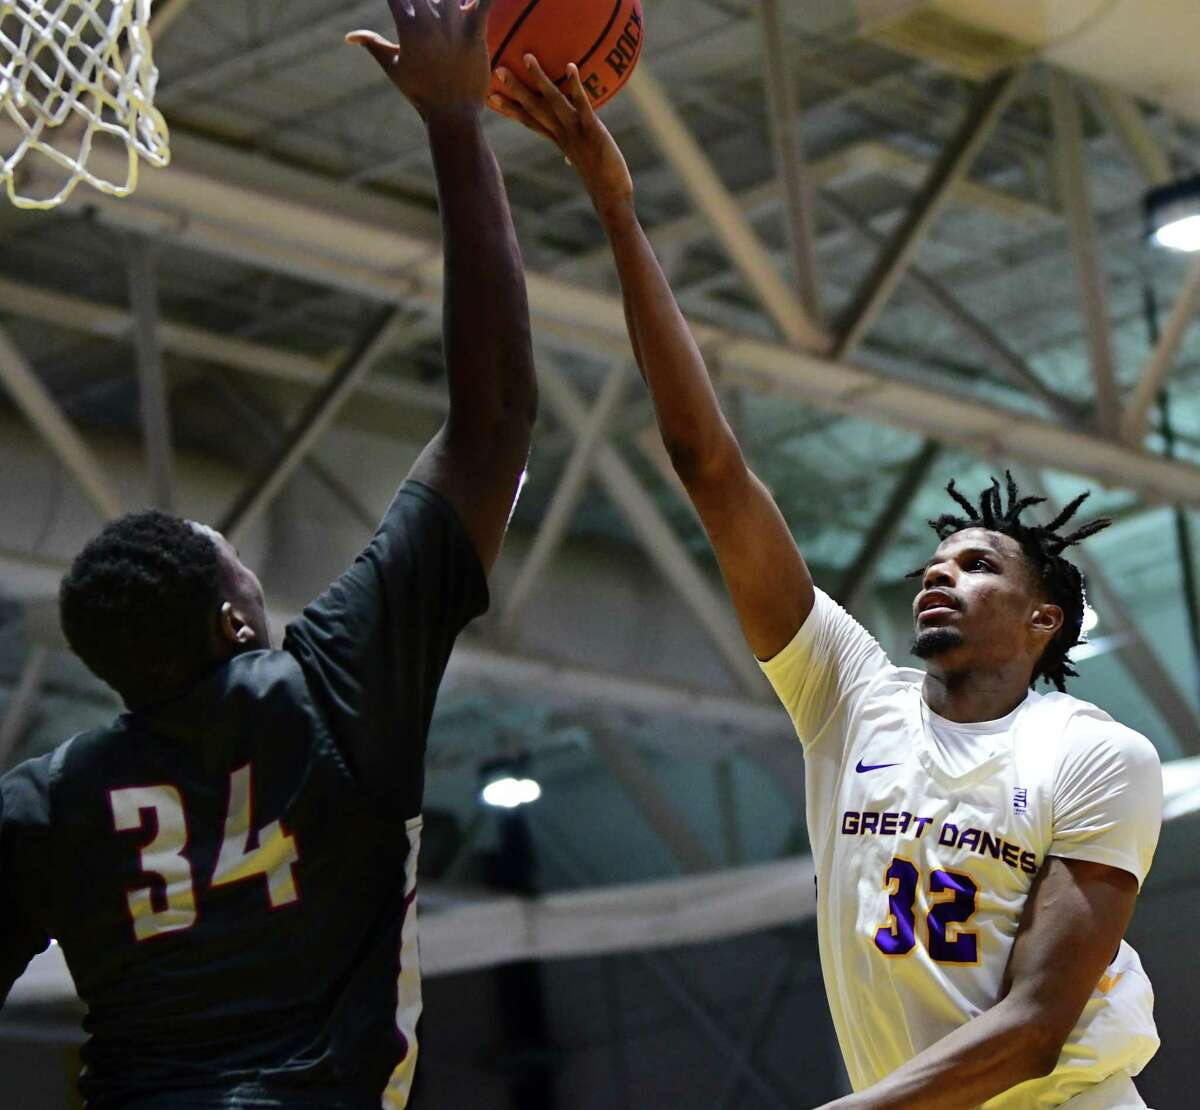 University at Albany's Romani Hansen drives to the hoop against Potsdam's Tyrese Baptiste during a basketball game at SEFCU Arena on Tuesday, Nov. 19, 2019 in Albany, N.Y. (Lori Van Buren/Times Union)